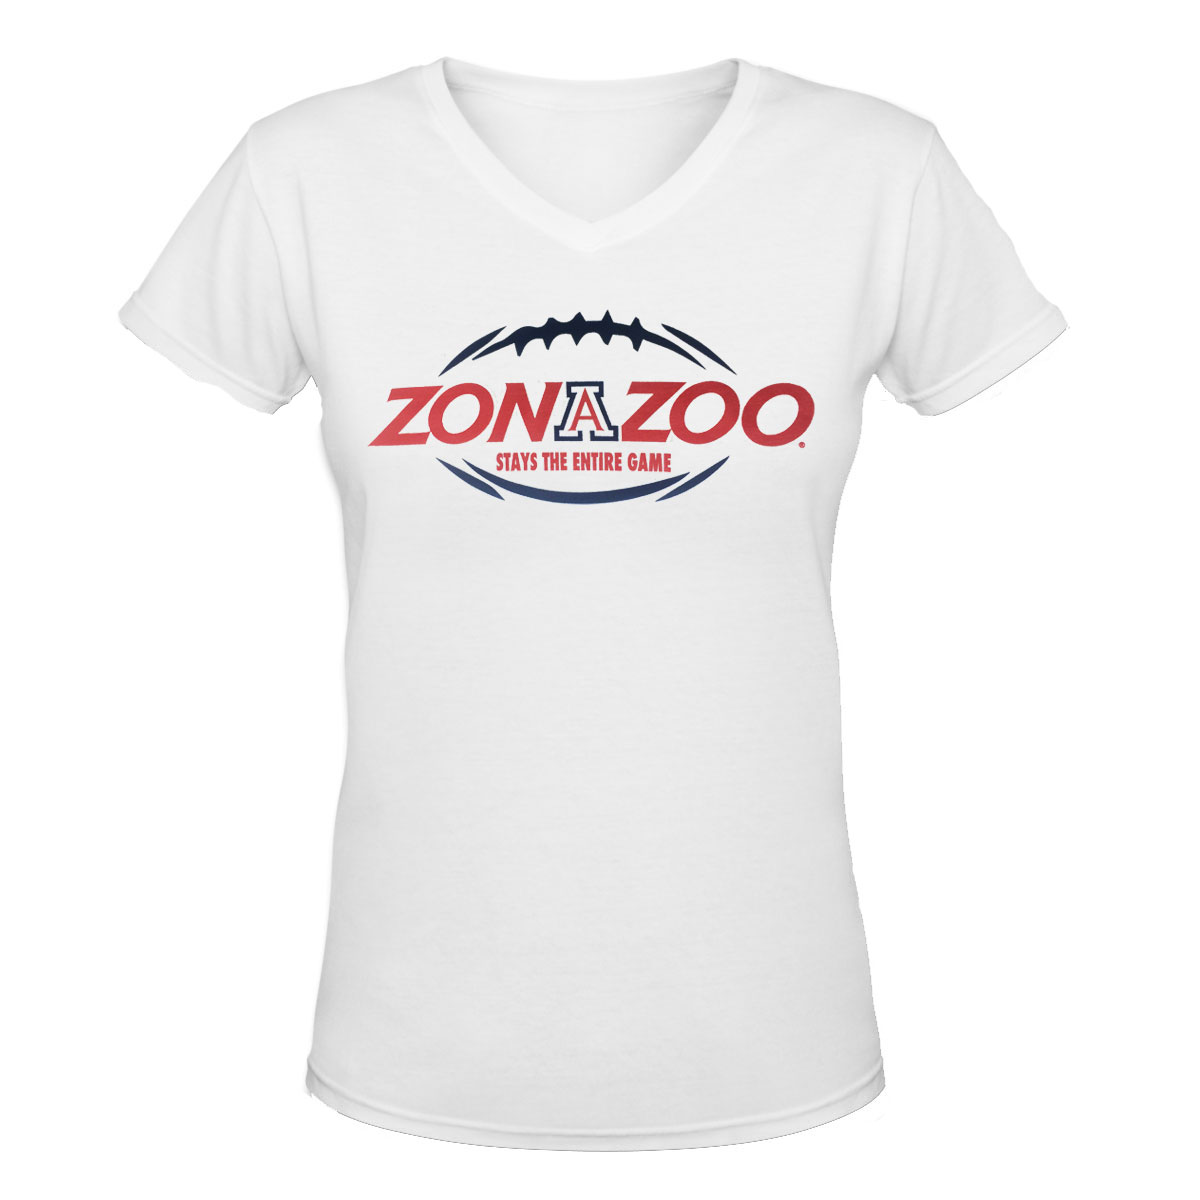 Image For The Victory: Women's Arizona Zona Zoo Stays The Entire Game